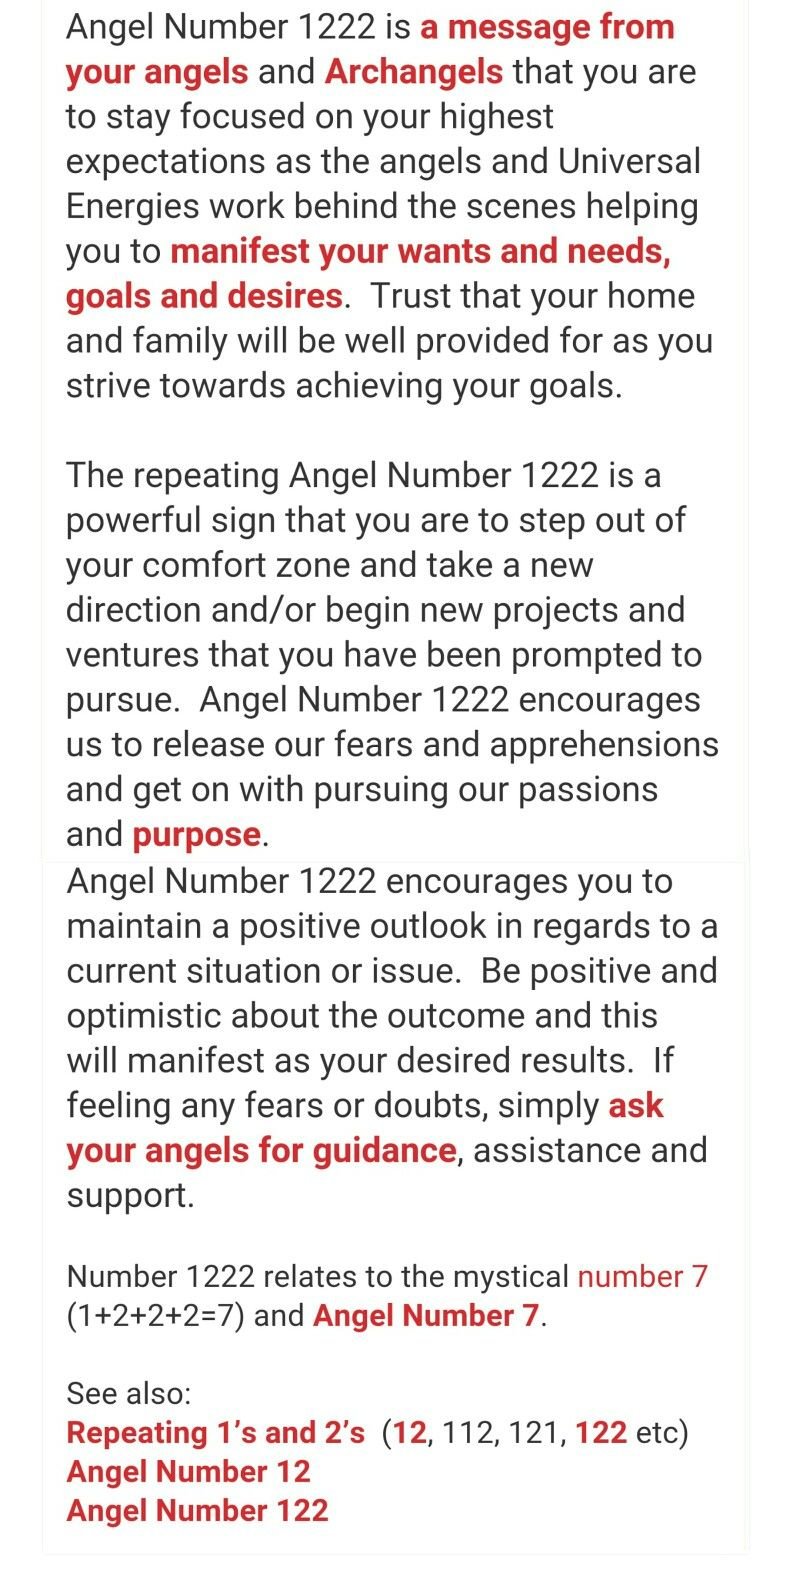 Meaning of the number 22 in the - Angel Number 1222 Meaning 12 22 1222 Meaning